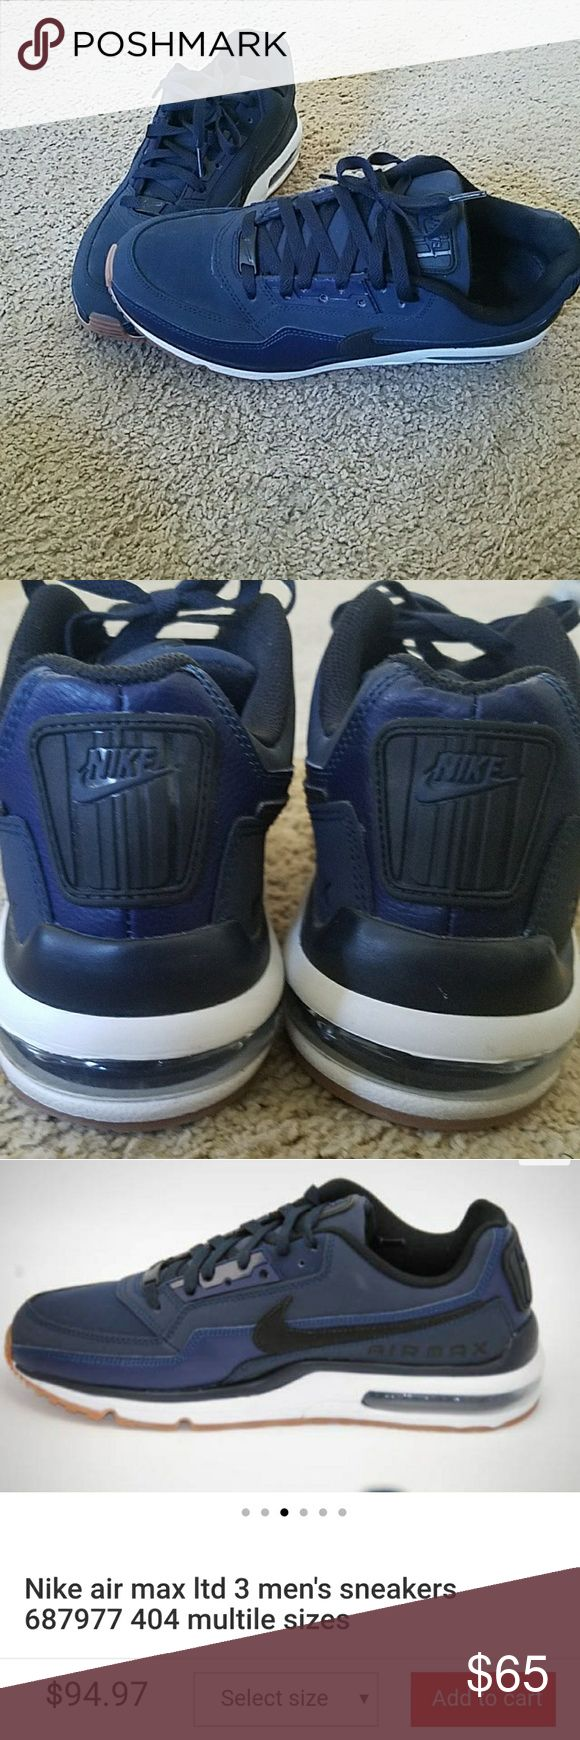 Men's Nike Air Max ltd 3 Midnight Navy Size 9 These Nike Air Max are selling brand new for over  $90.  I have this pair for you in excellent used condition for a reasonable price!  Worn twice! Nike Shoes Sneakers